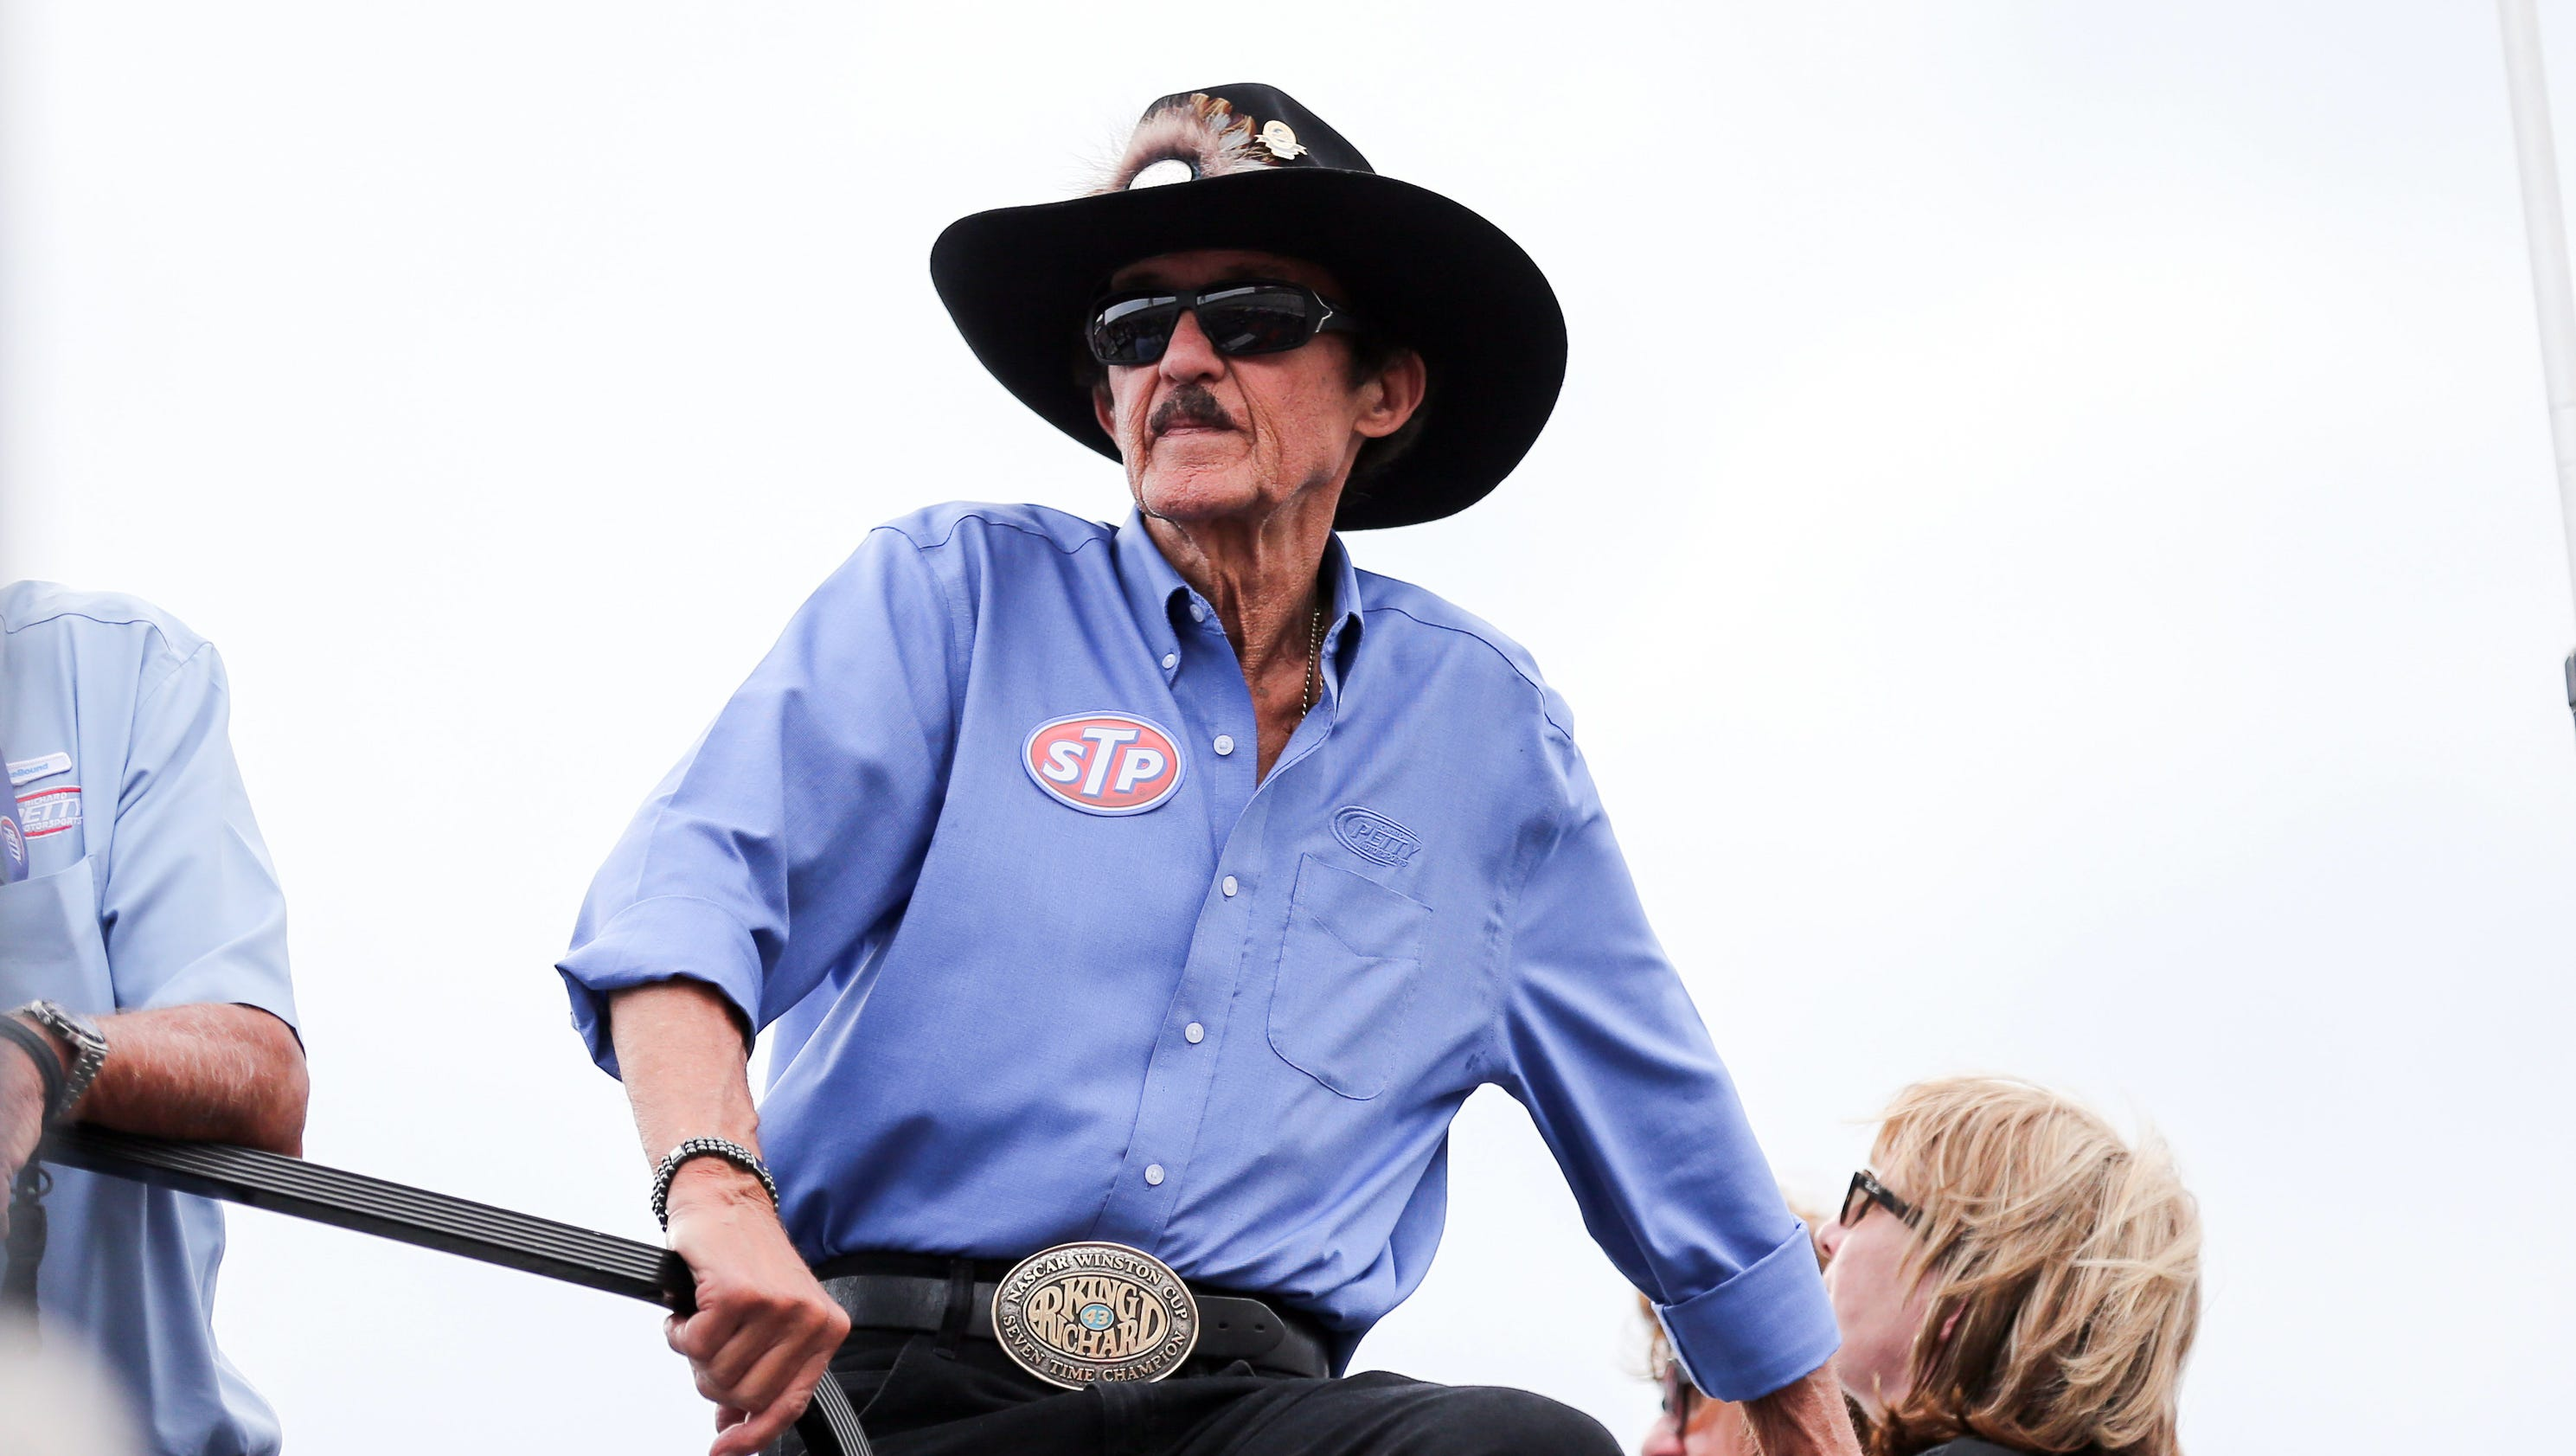 Richard Petty Motorsports >> 12 Questions with 'The King' Richard Petty